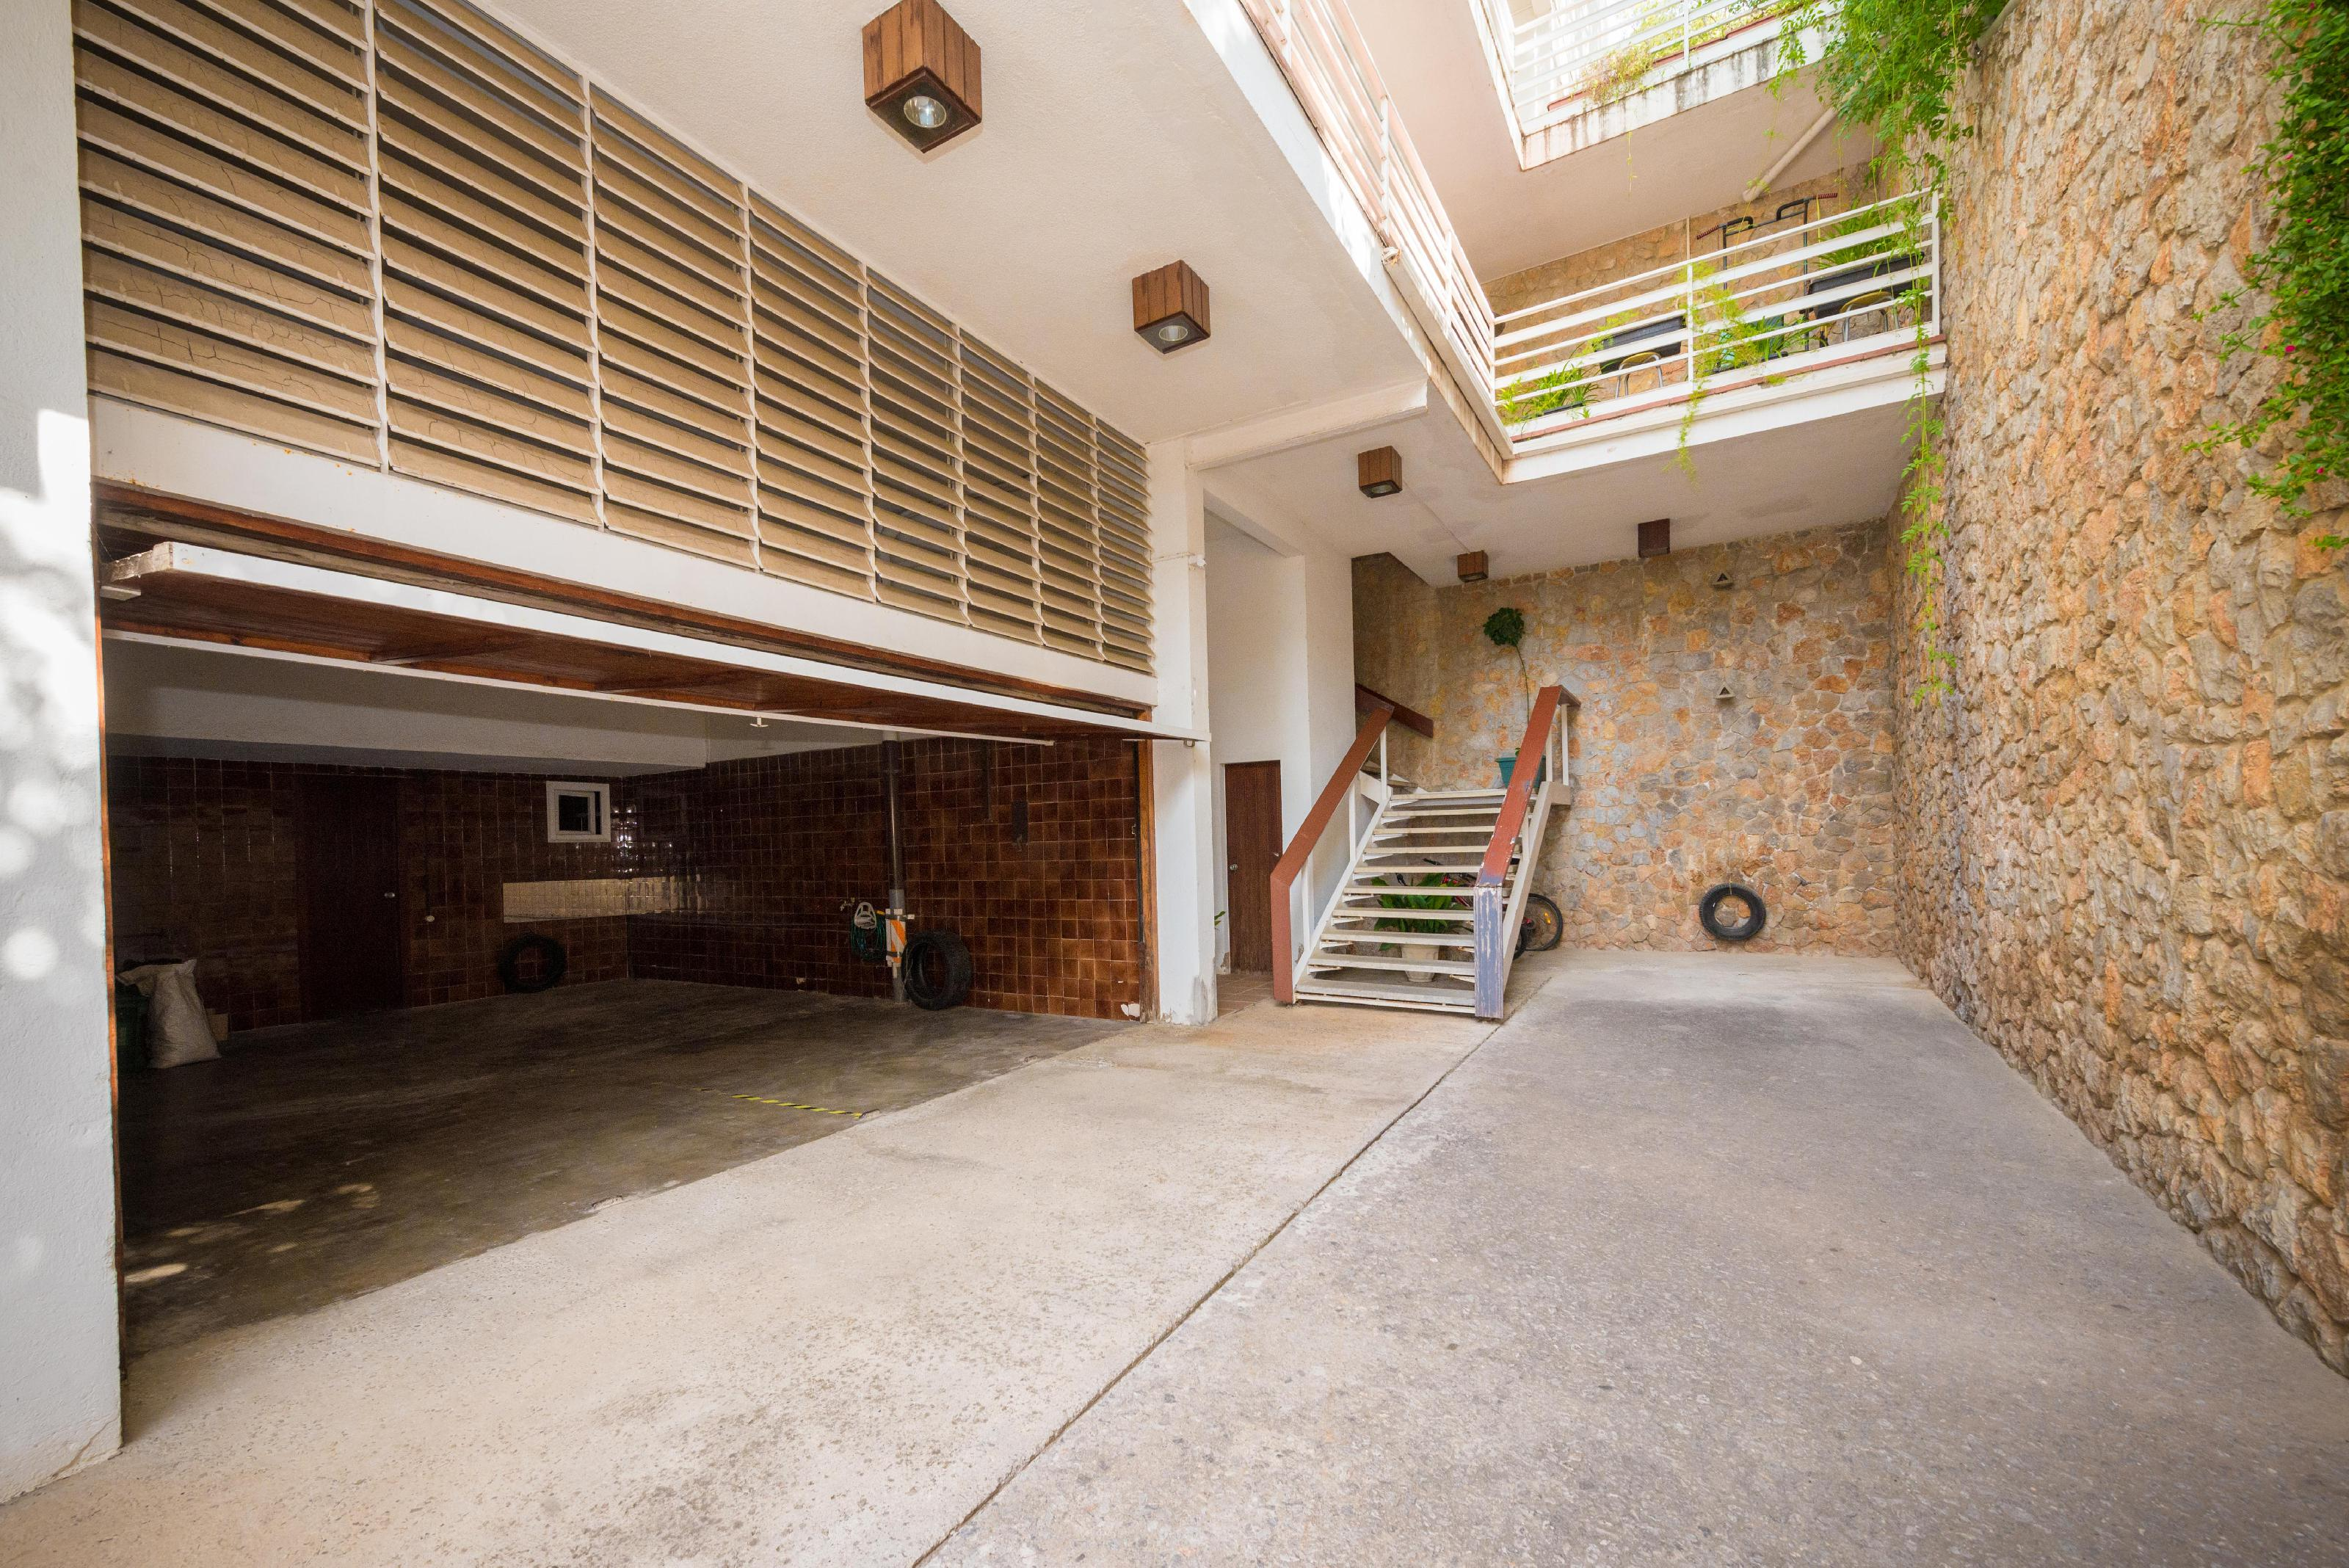 253501 Detached House for sale in Bellamar 36